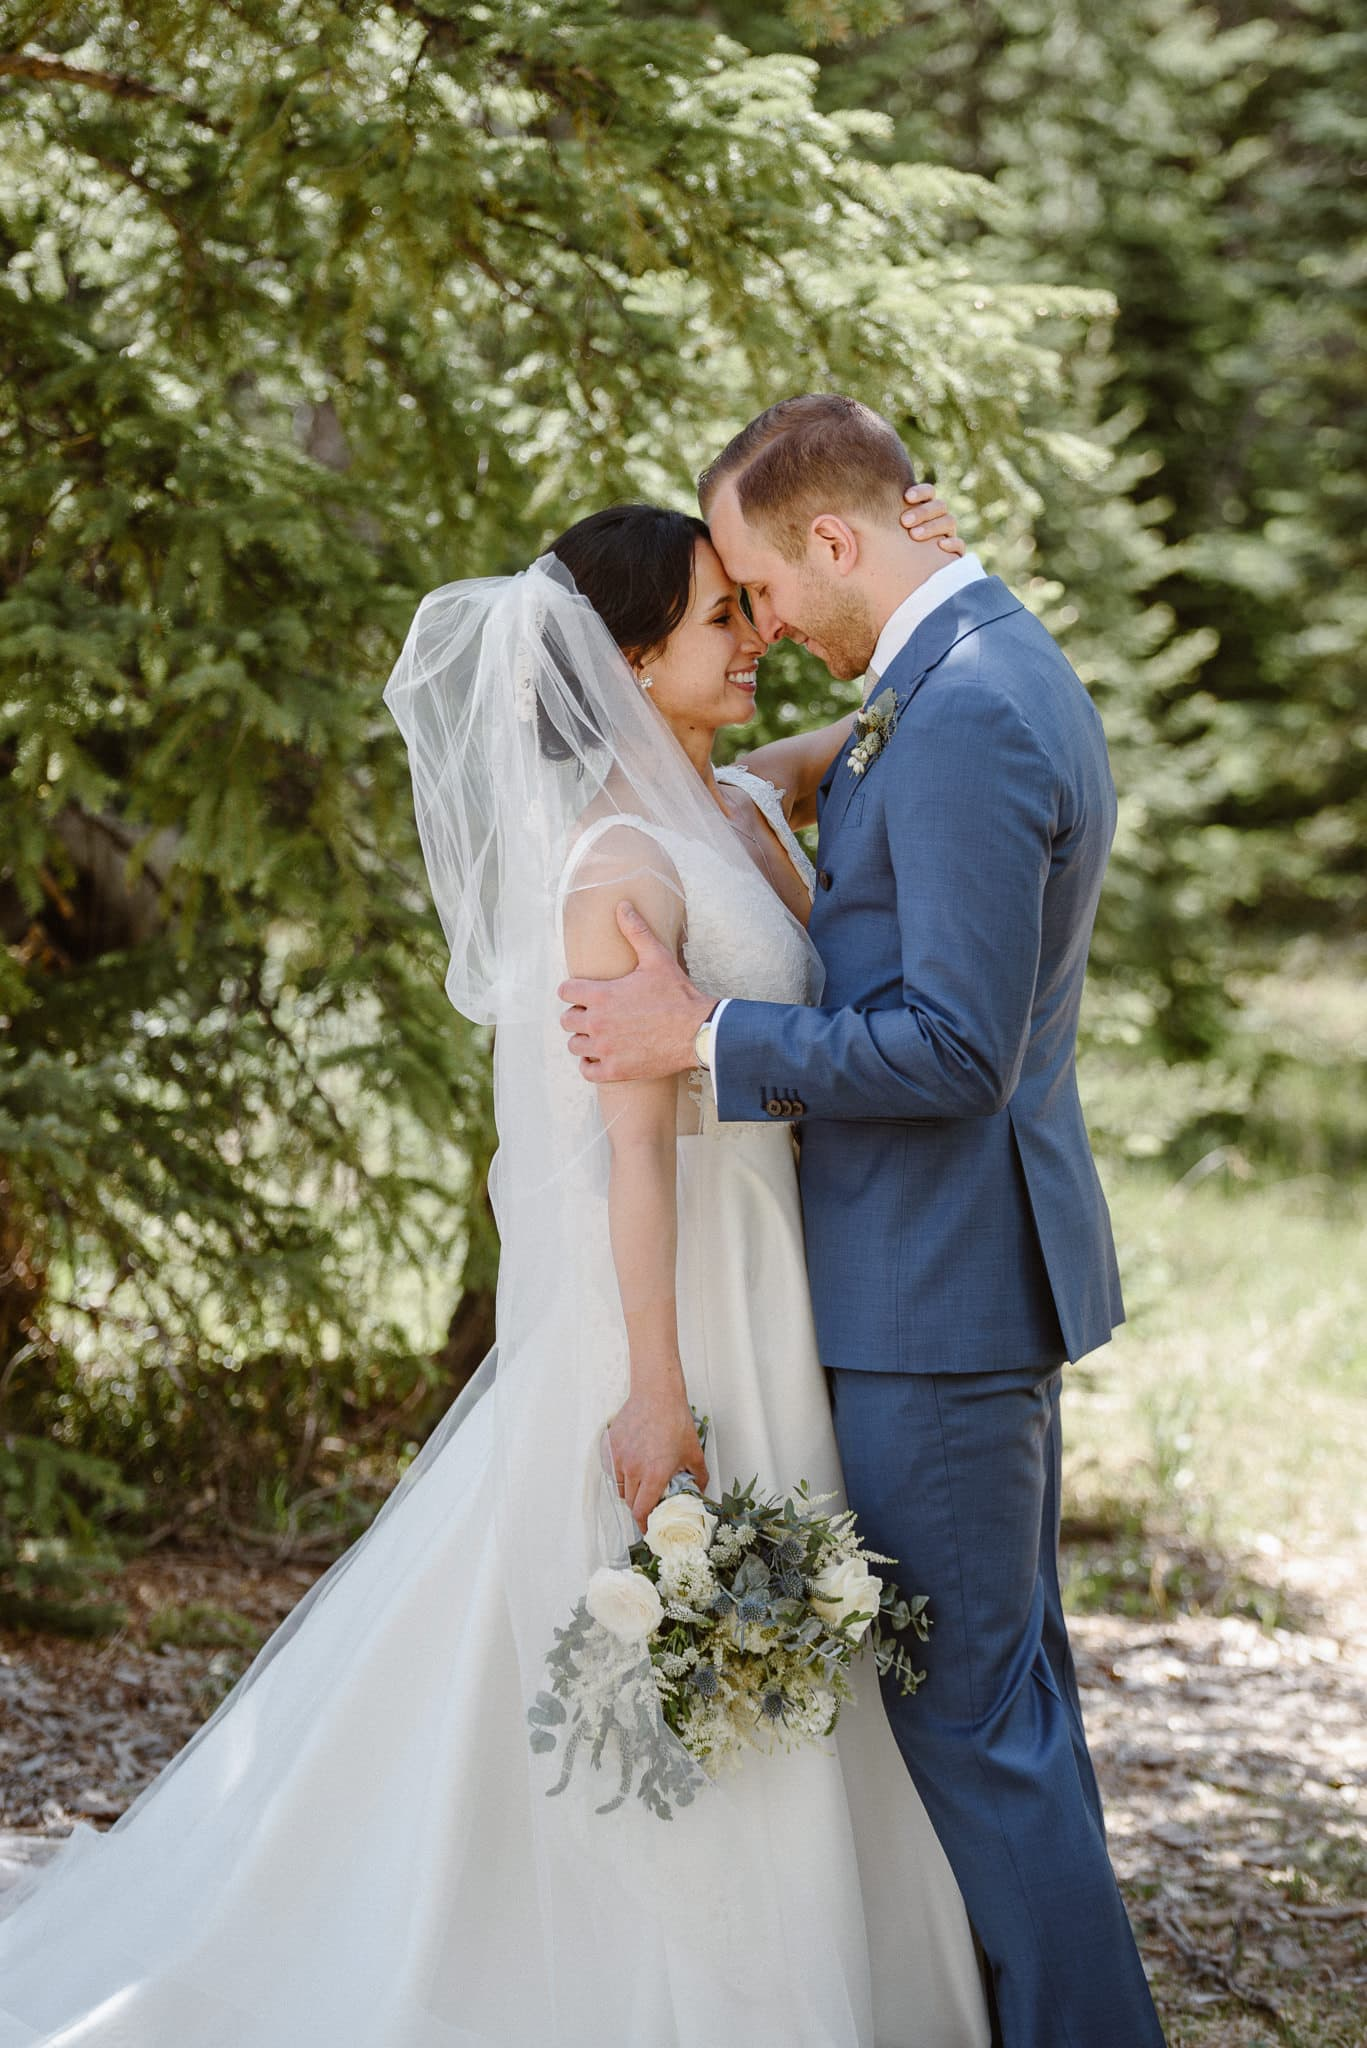 Bride and groom portraits in the woods at Breckenridge Nordic Center wedding, Summit County wedding photographer